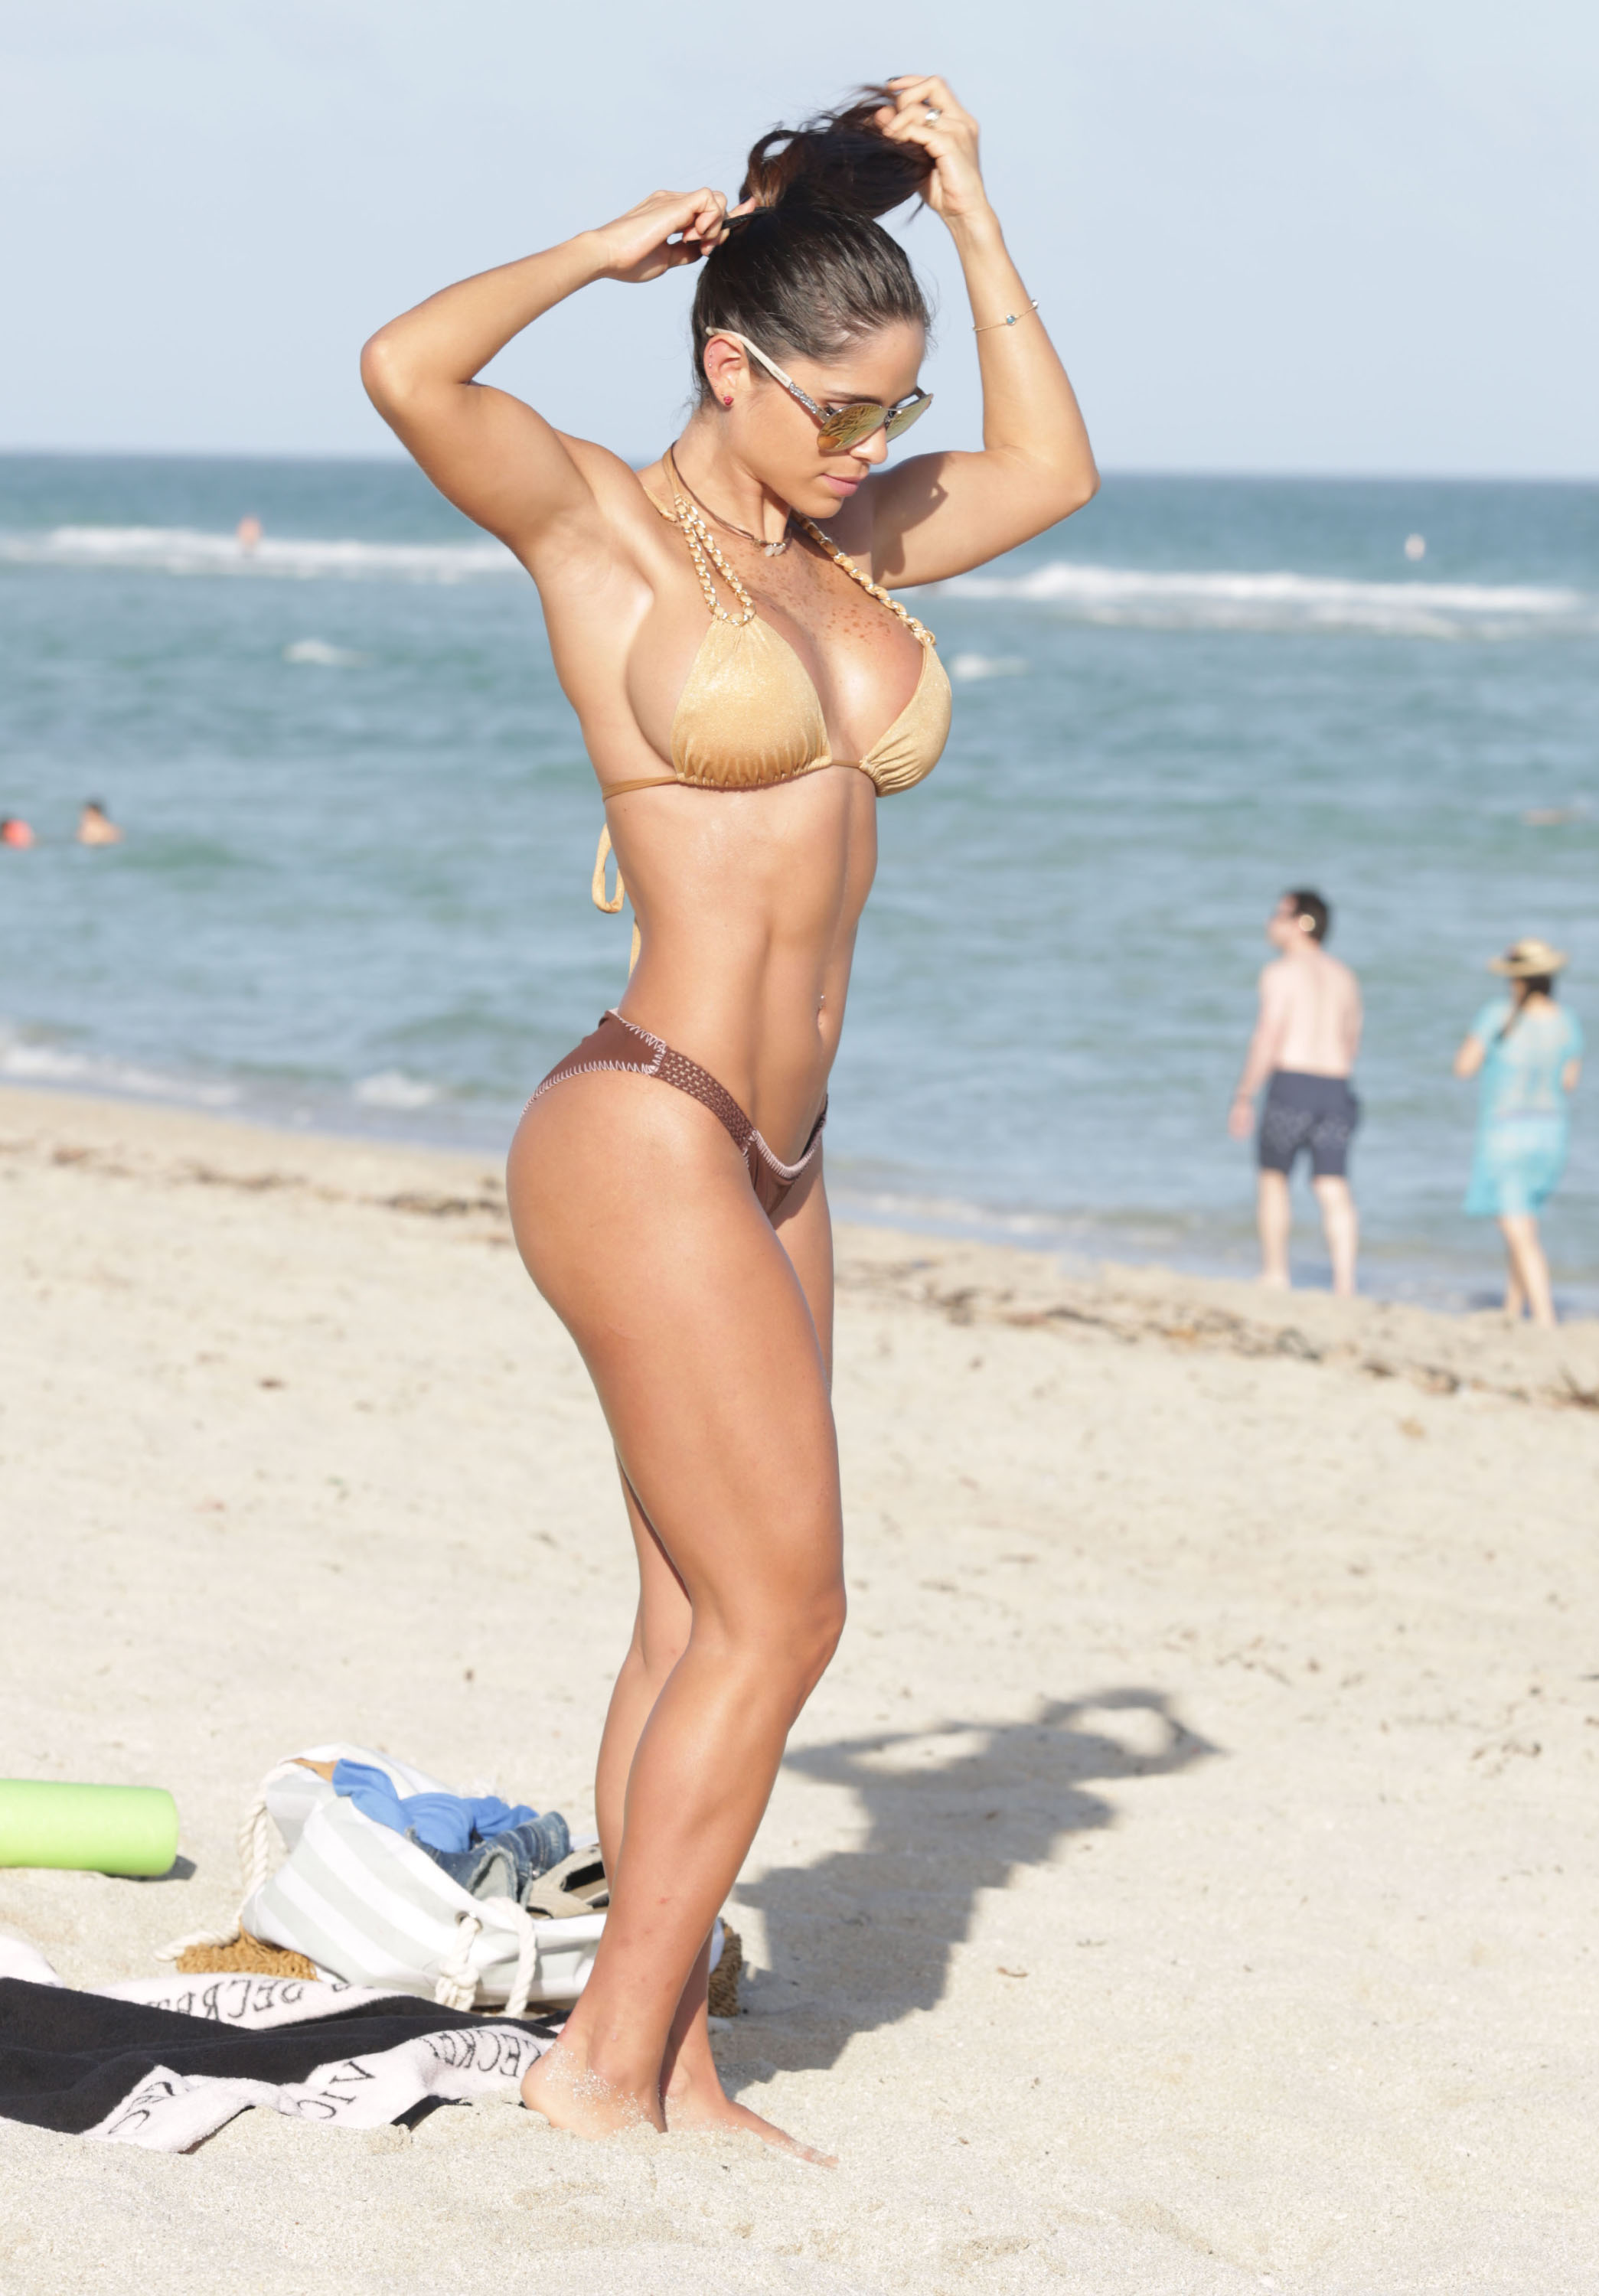 Sexy pics of Michelle Lewin